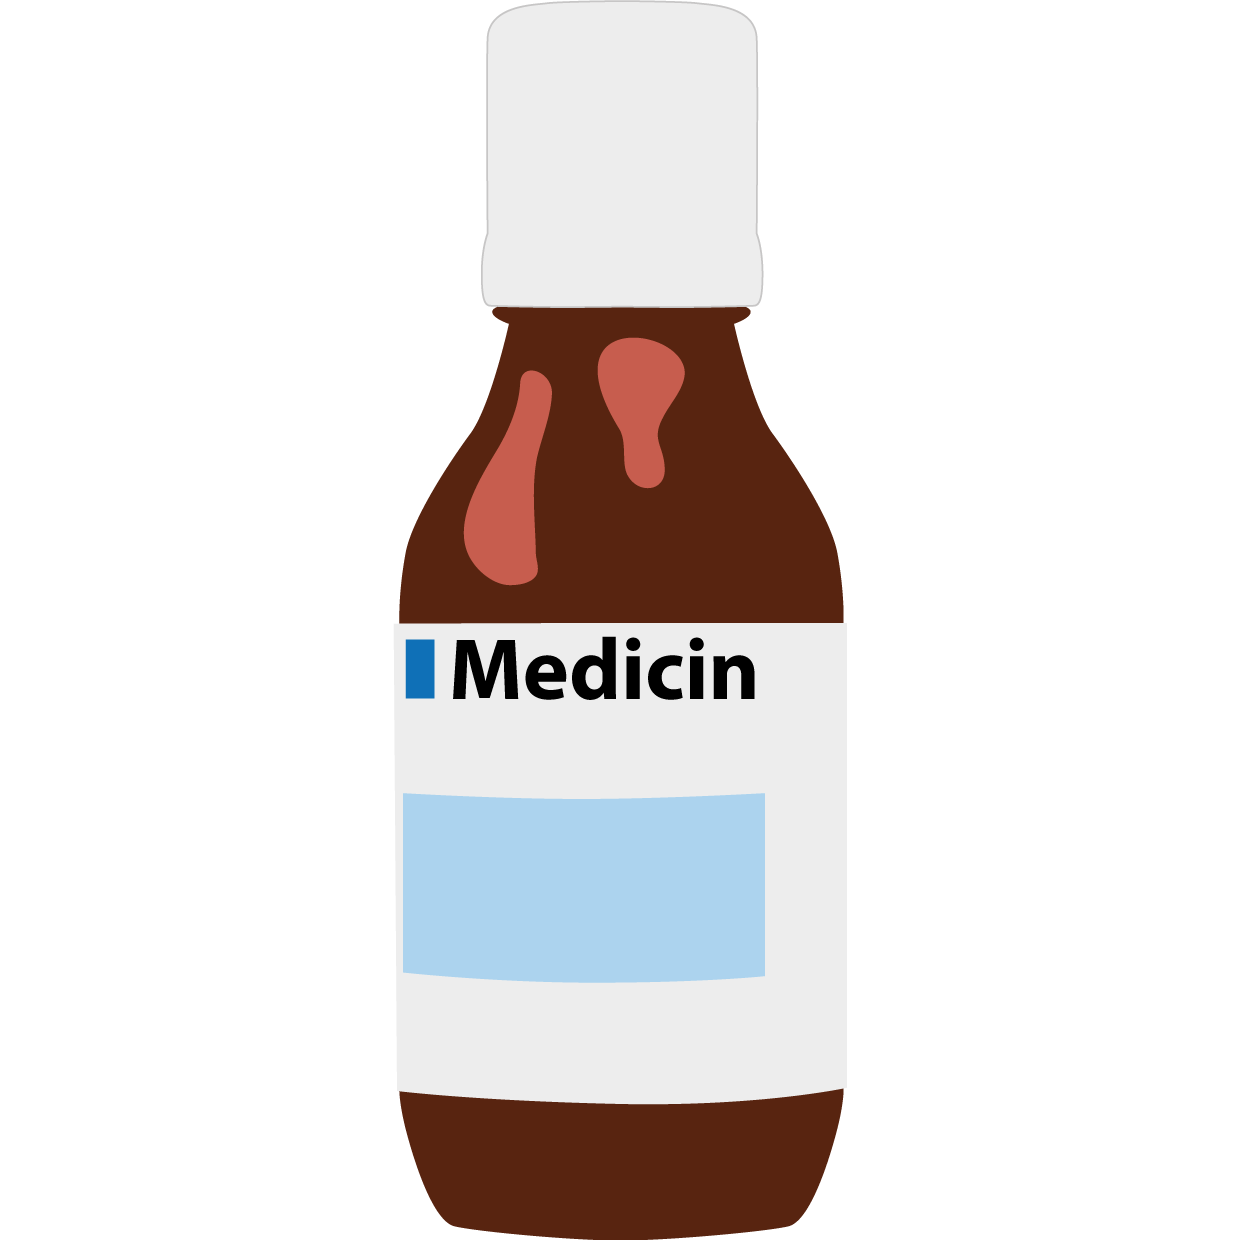 Medicinflaska. Illustration.